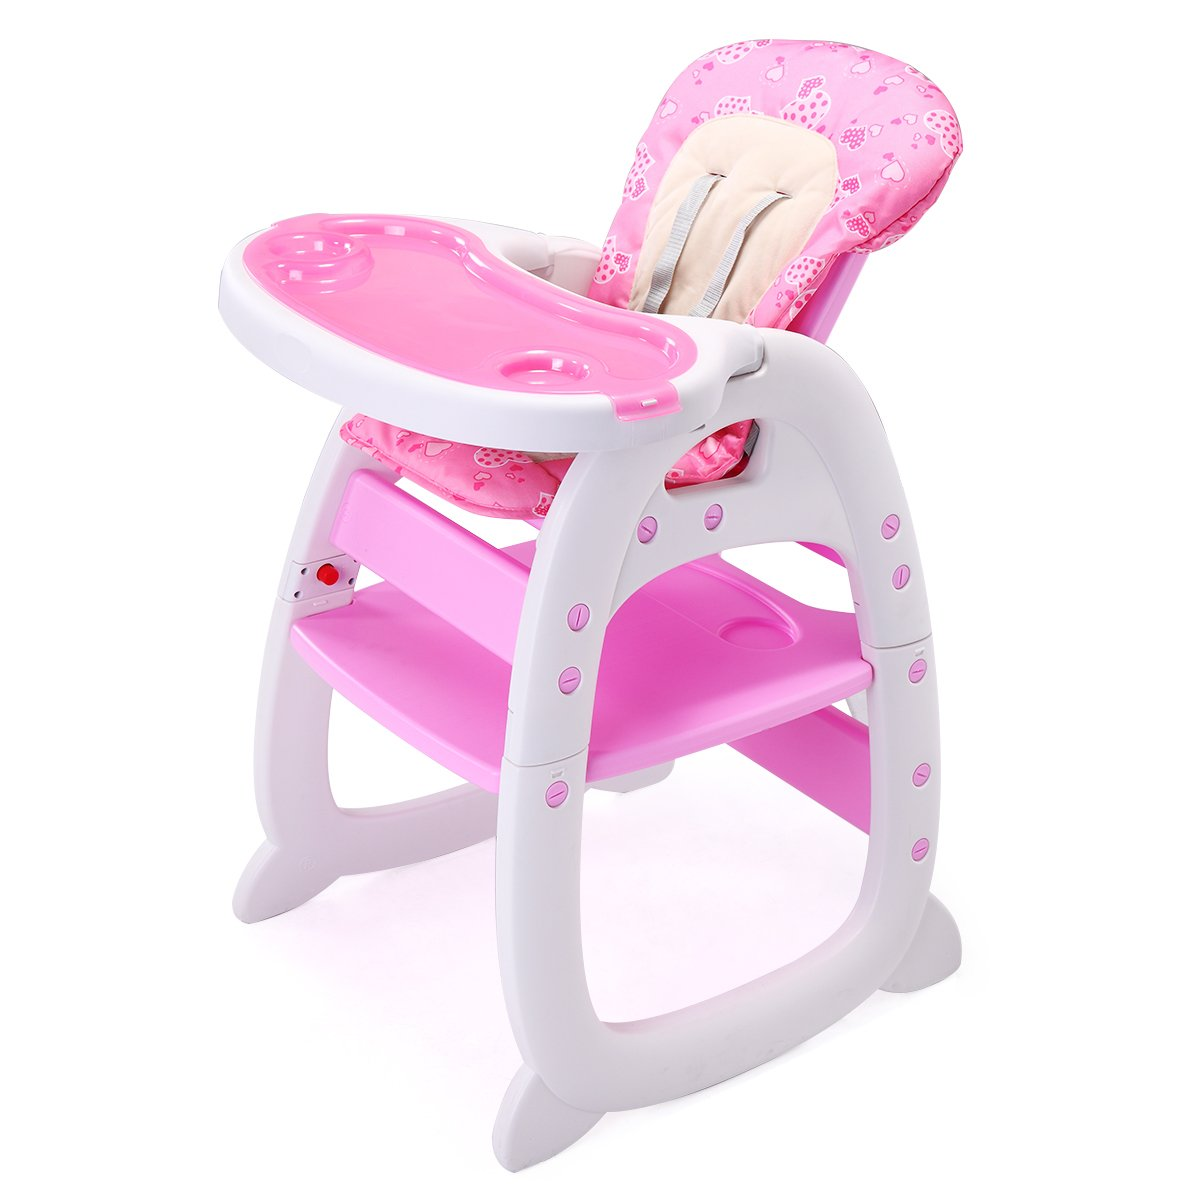 JAXPETY 3in1 Convertible Infant High Chair Play Table Seat Booster Toddler Feeding Tray